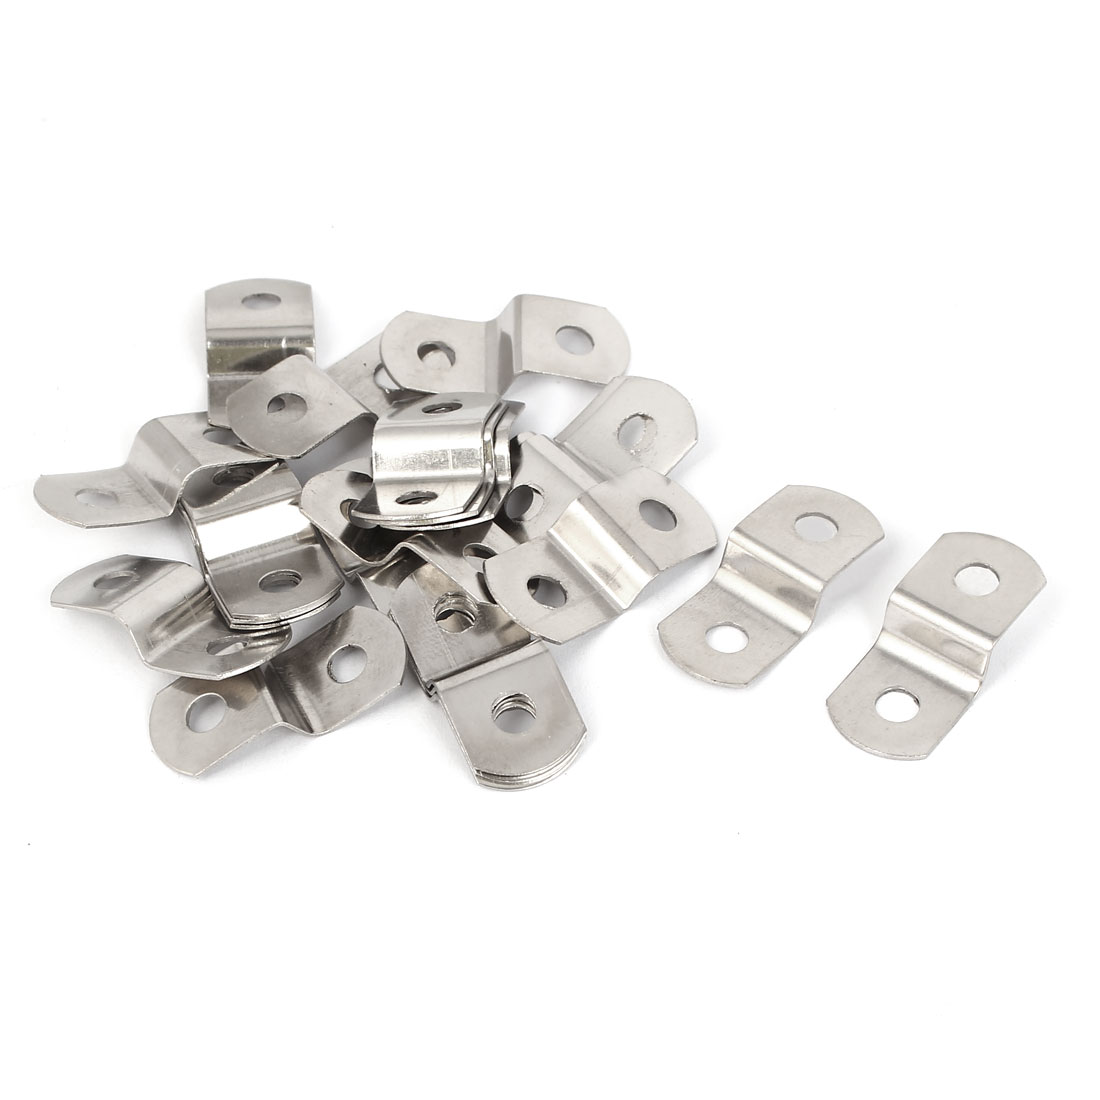 30mm x 13mm x 7mm Metal Z Shape Photo Picture Frame Braces Brackets 20PCS